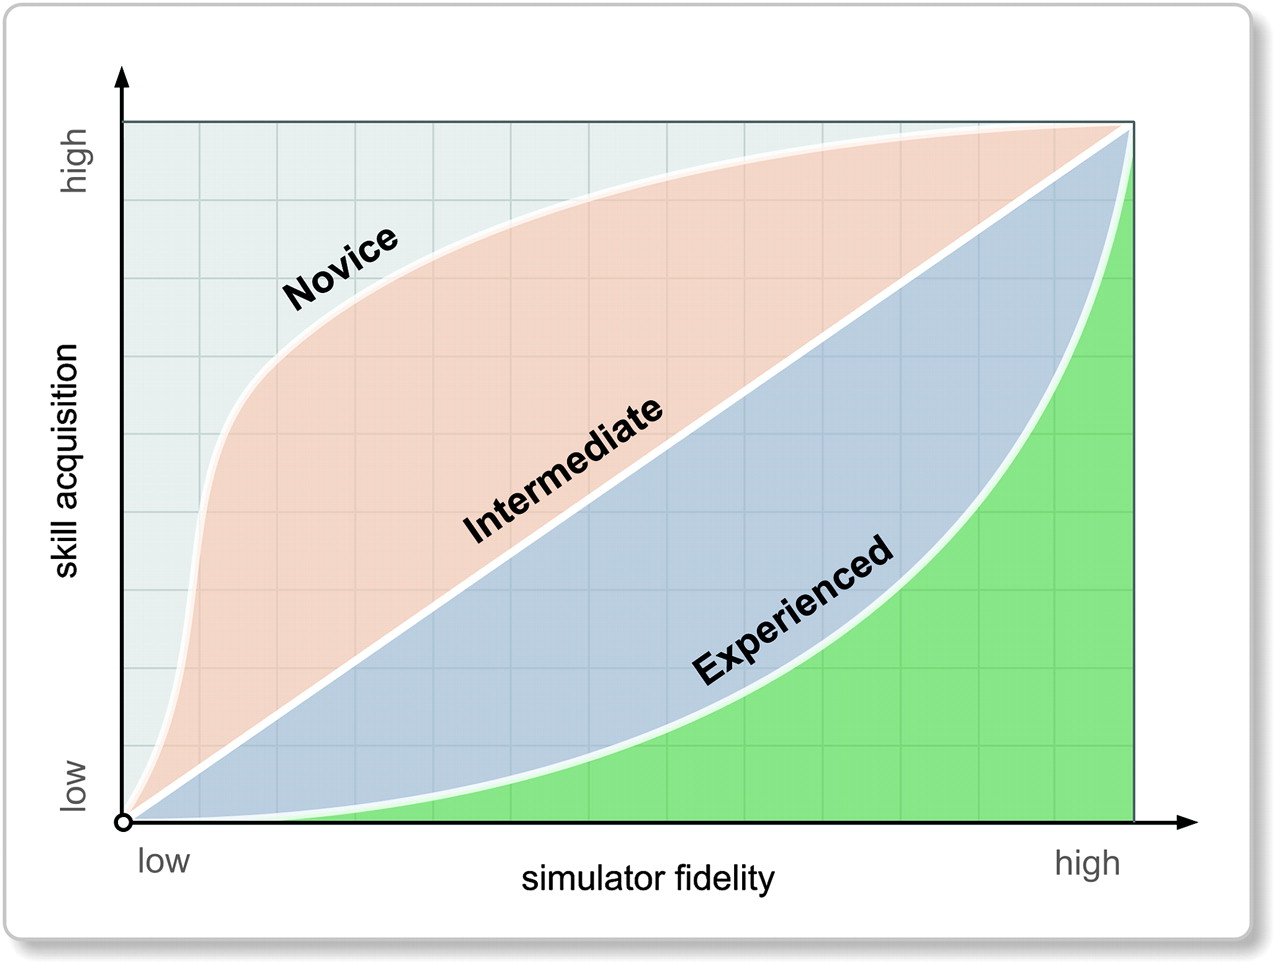 relationship between high fidelity simulation and patient safety